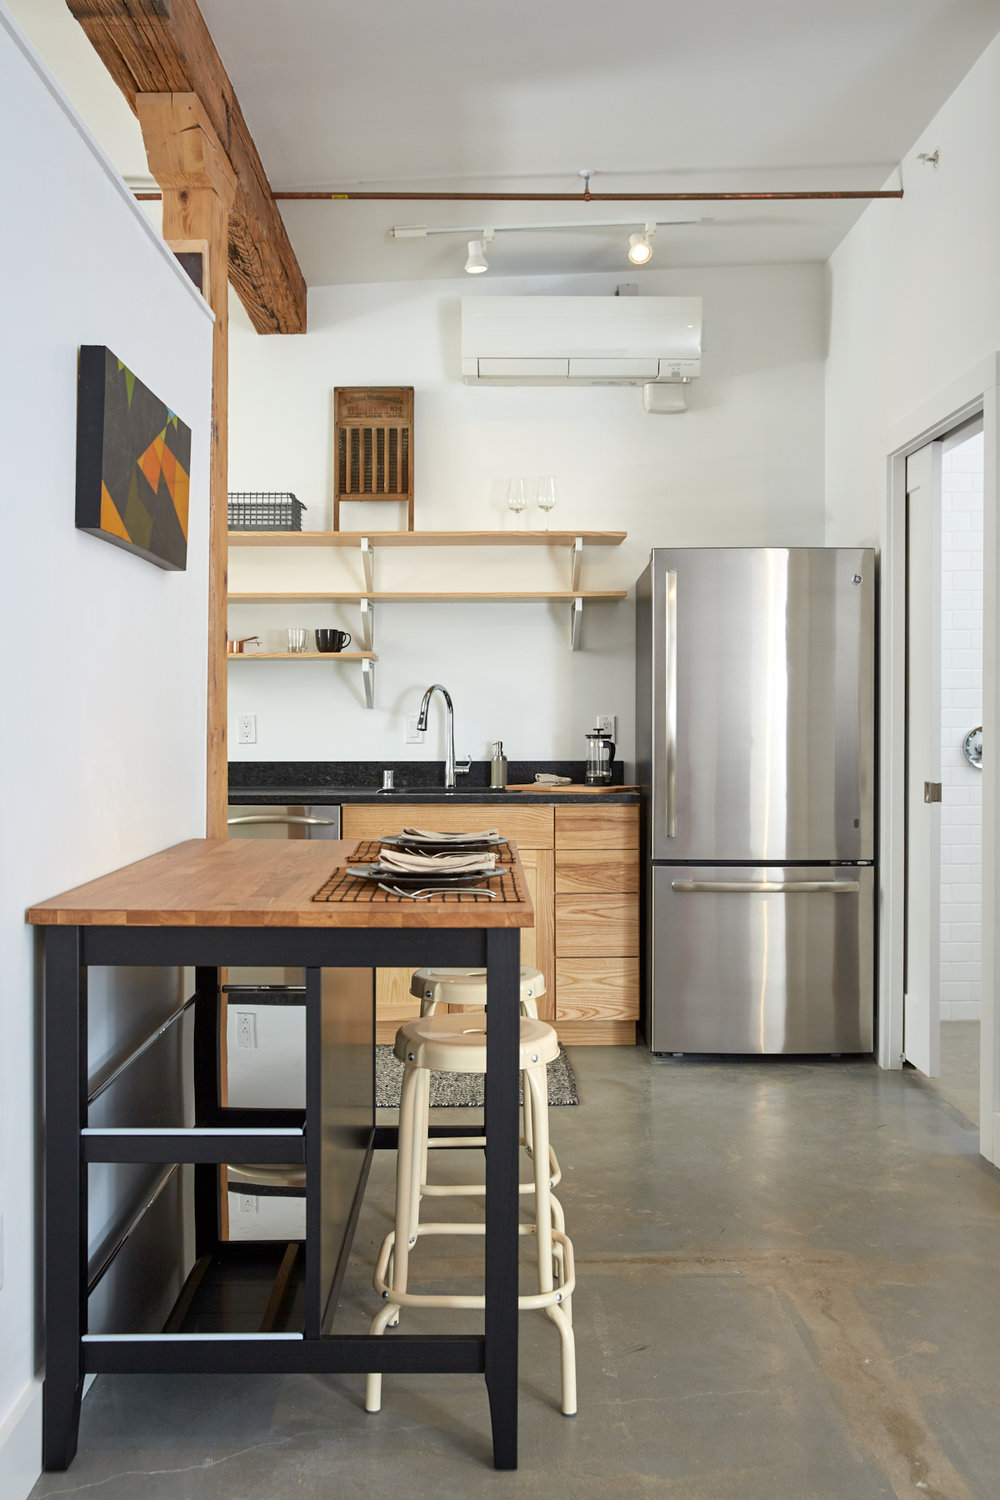 EastEndLofts_March2017-17.jpg